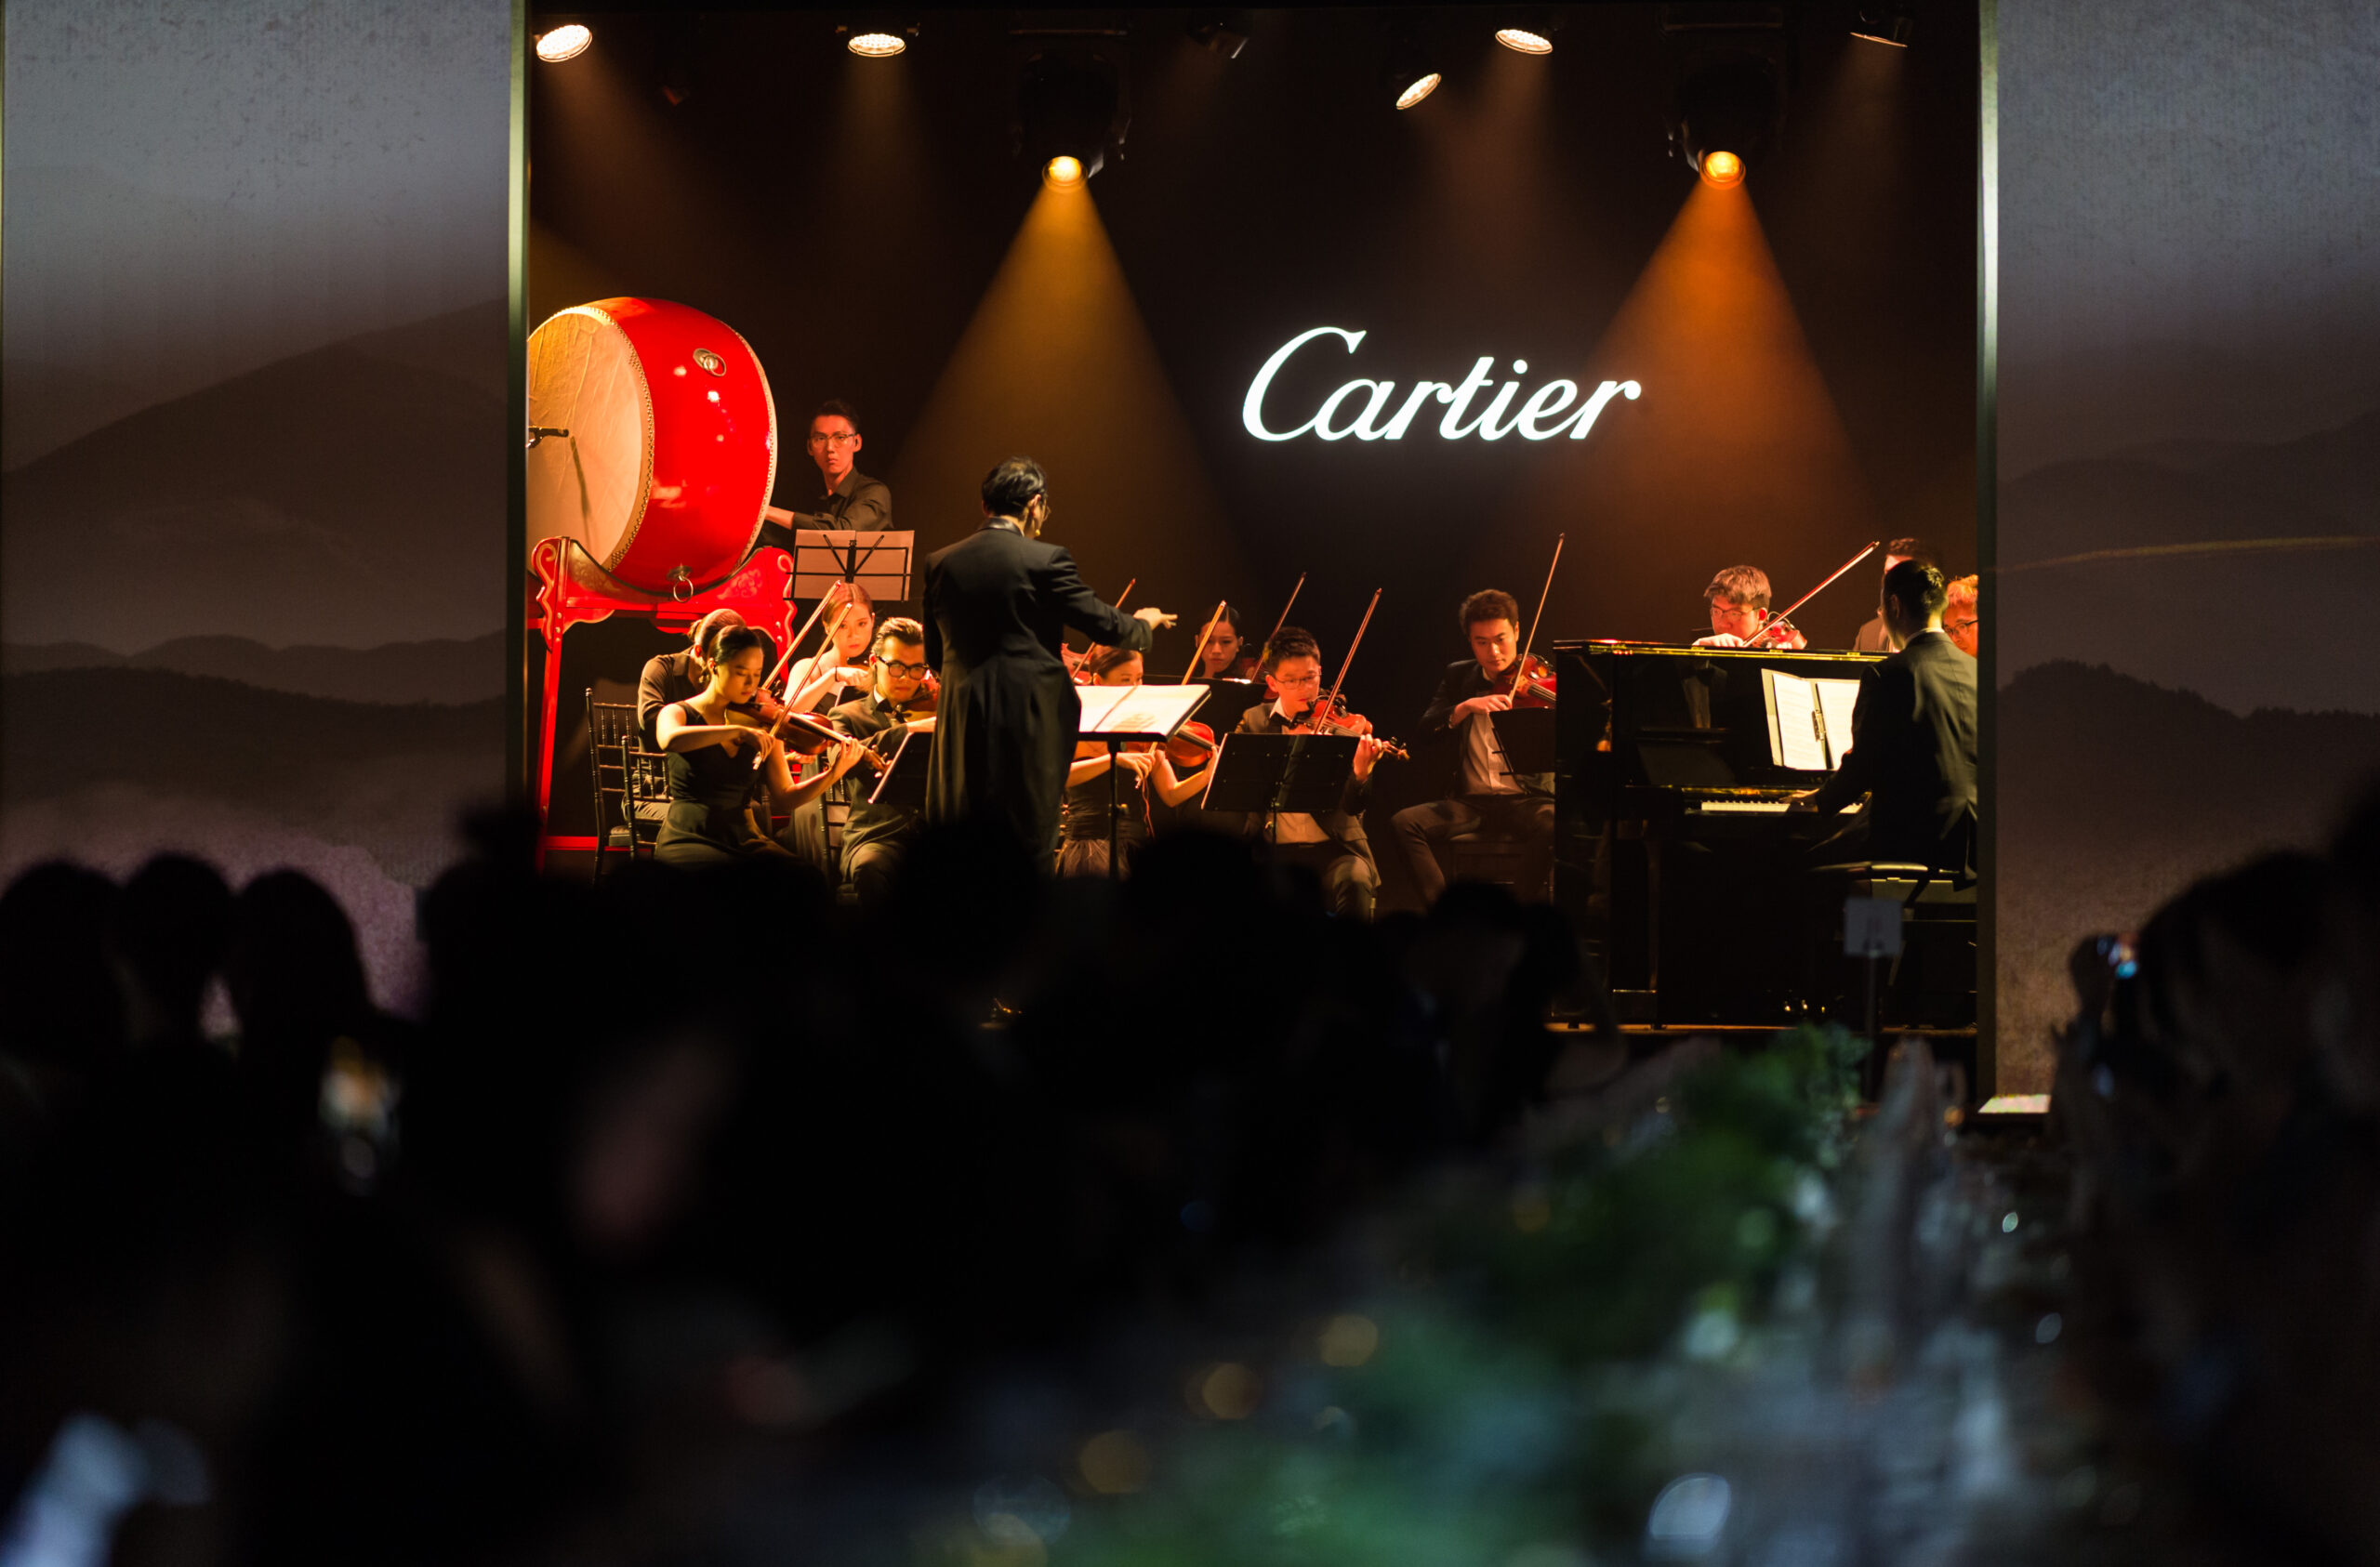 Cartier P66 Boutique Re-opening & Gala Dinner July 31st Shanghai – 6